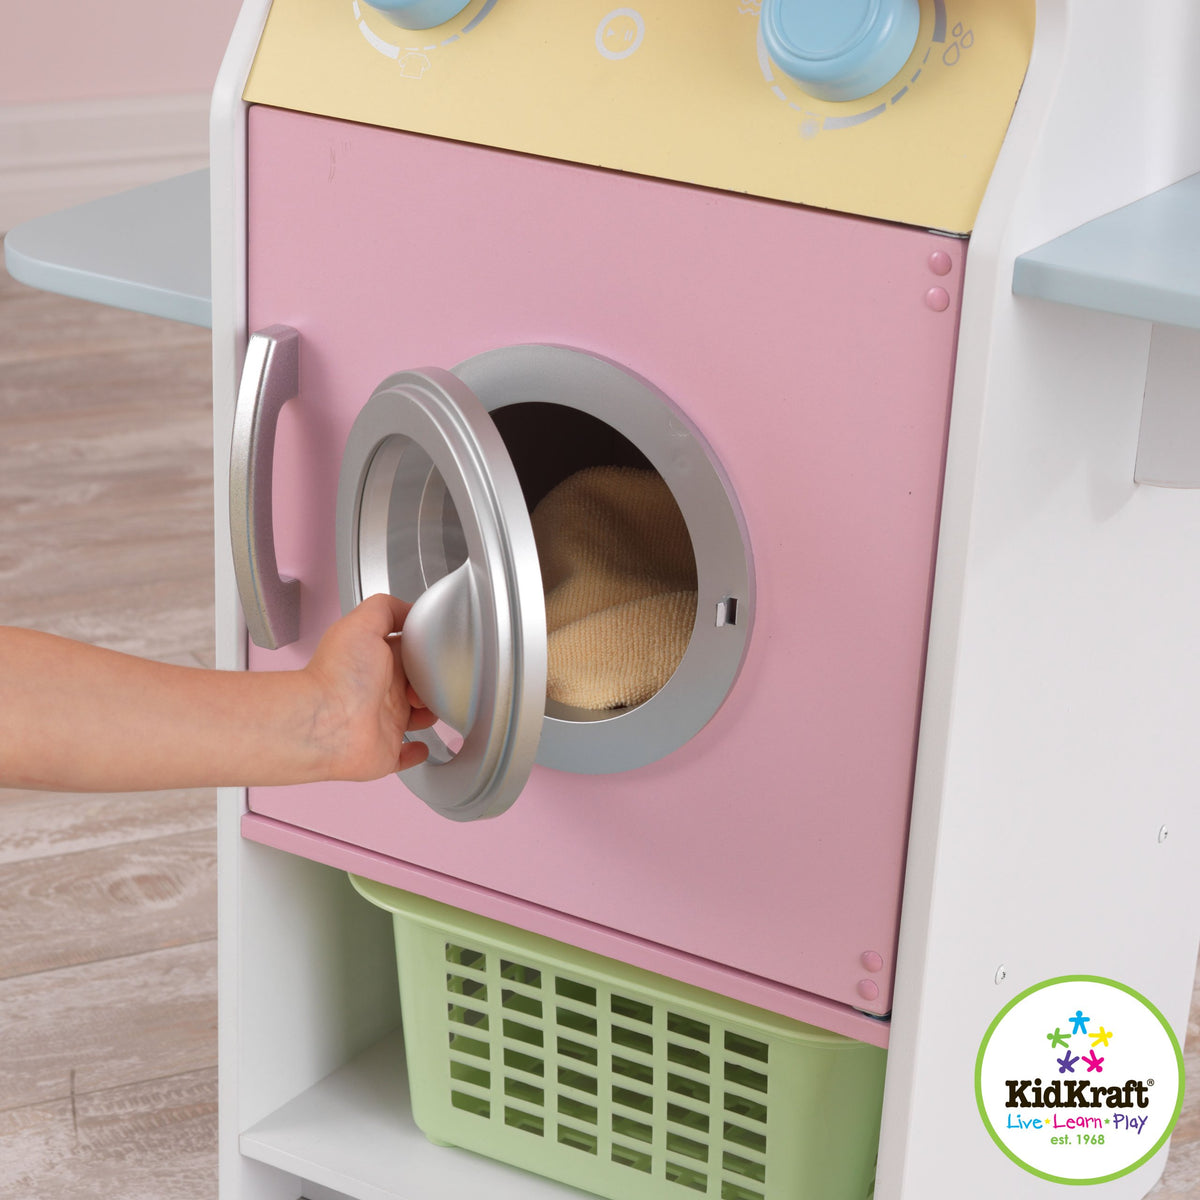 KidKraft Laundry Children's Pretend Play Wooden Stacking Washer and Dryer Toy with Iron and Basket - Pastel